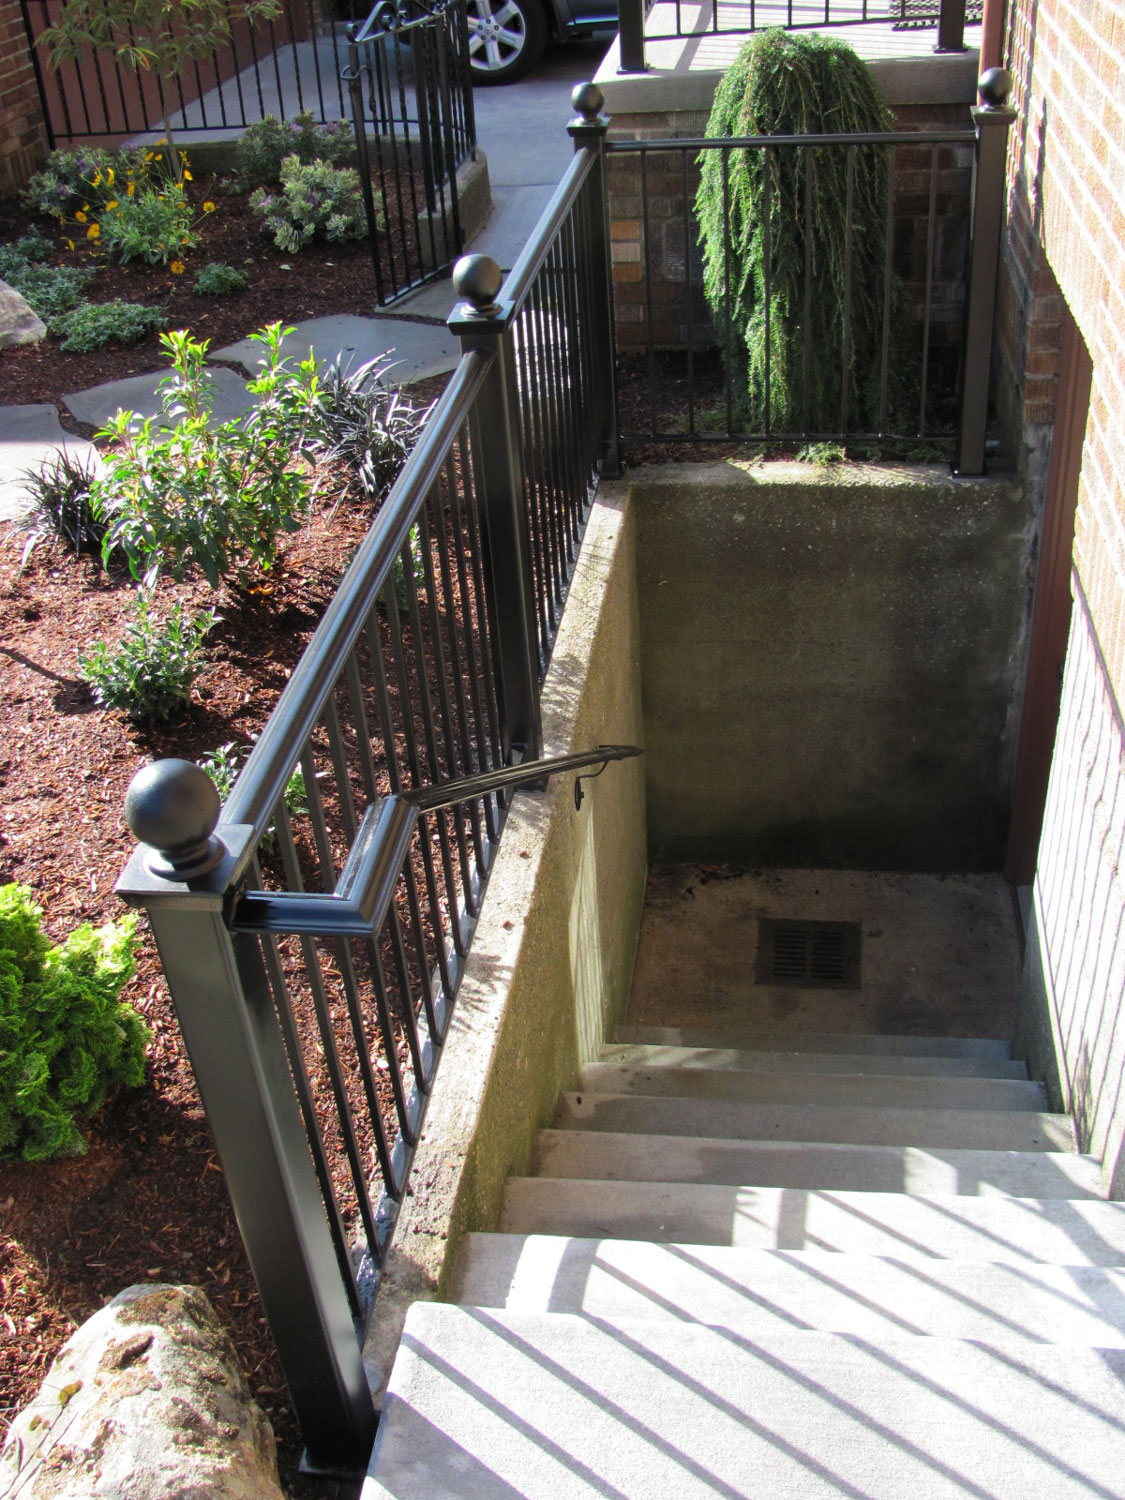 Handrail and Guardrail for Exterior Basement Steps - Going Down - Seattle, WA